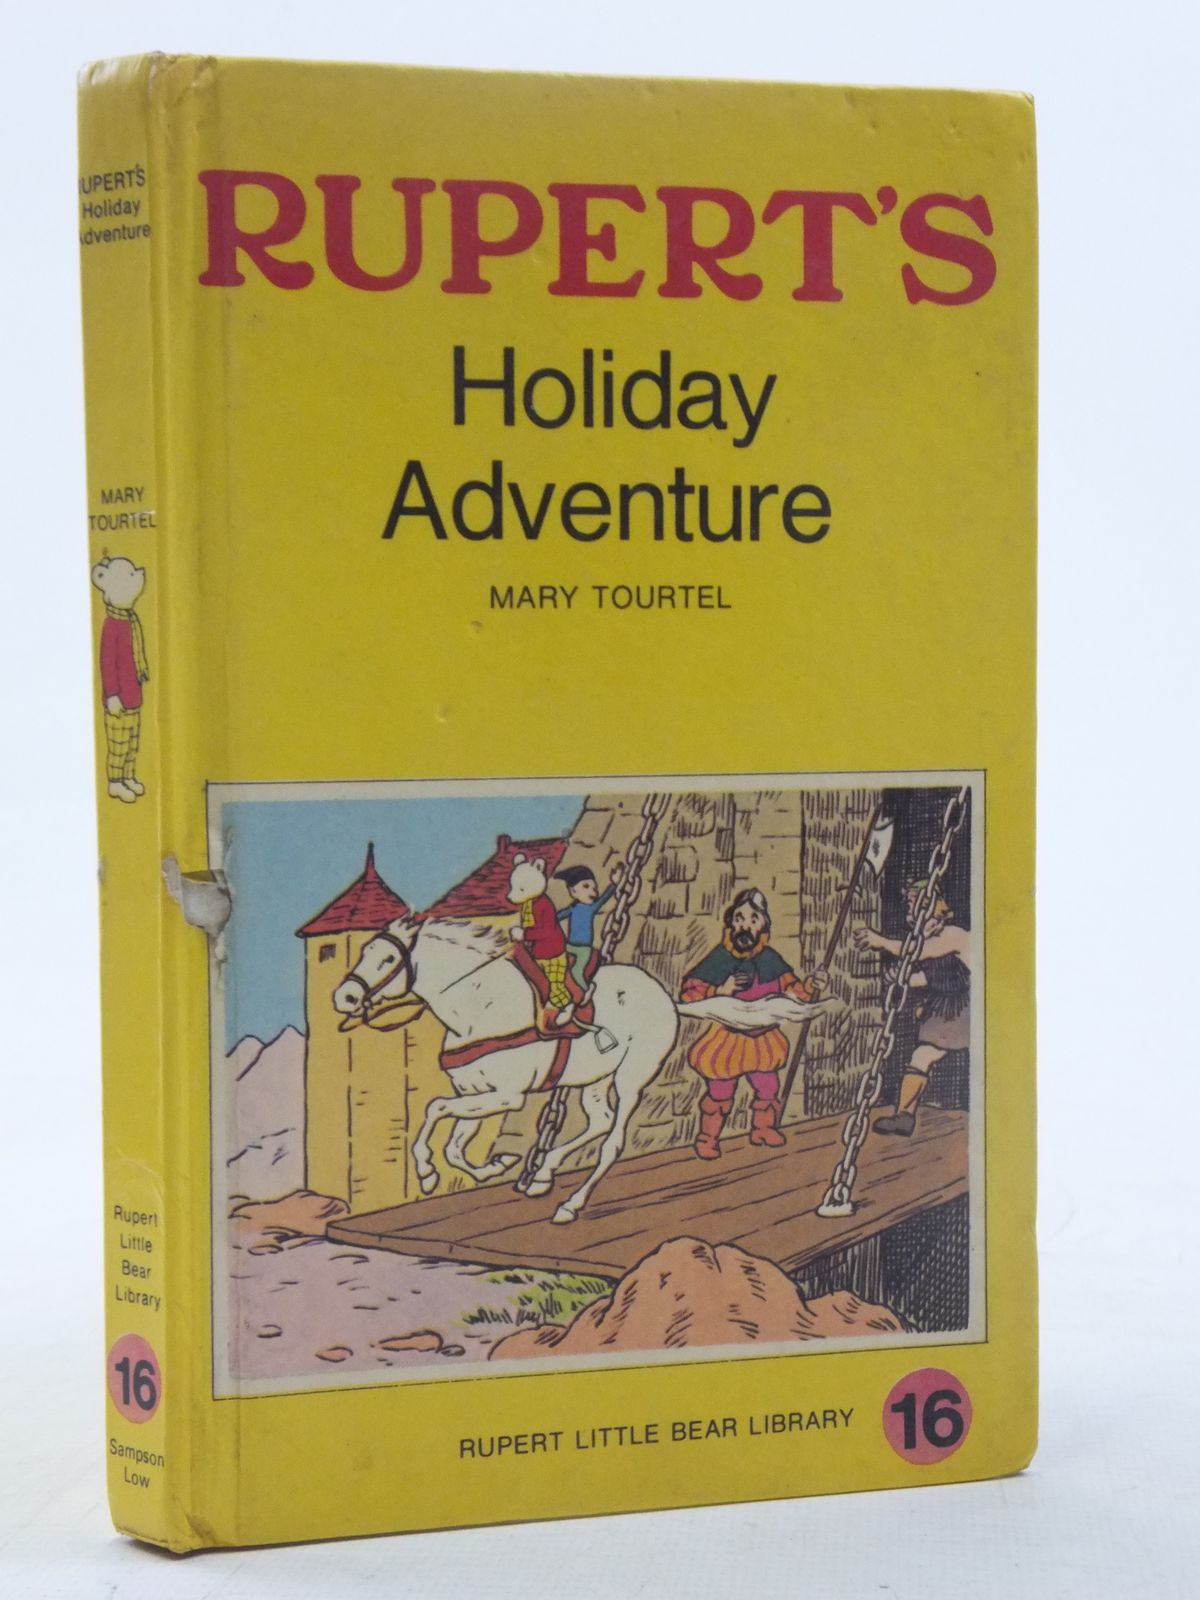 Photo of RUPERT'S HOLIDAY ADVENTURE - RUPERT LITTLE BEAR LIBRARY No. 16 (WOOLWORTH) written by Tourtel, Mary illustrated by Tourtel, Mary published by Sampson Low, Marston & Co. Ltd. (STOCK CODE: 2117966)  for sale by Stella & Rose's Books